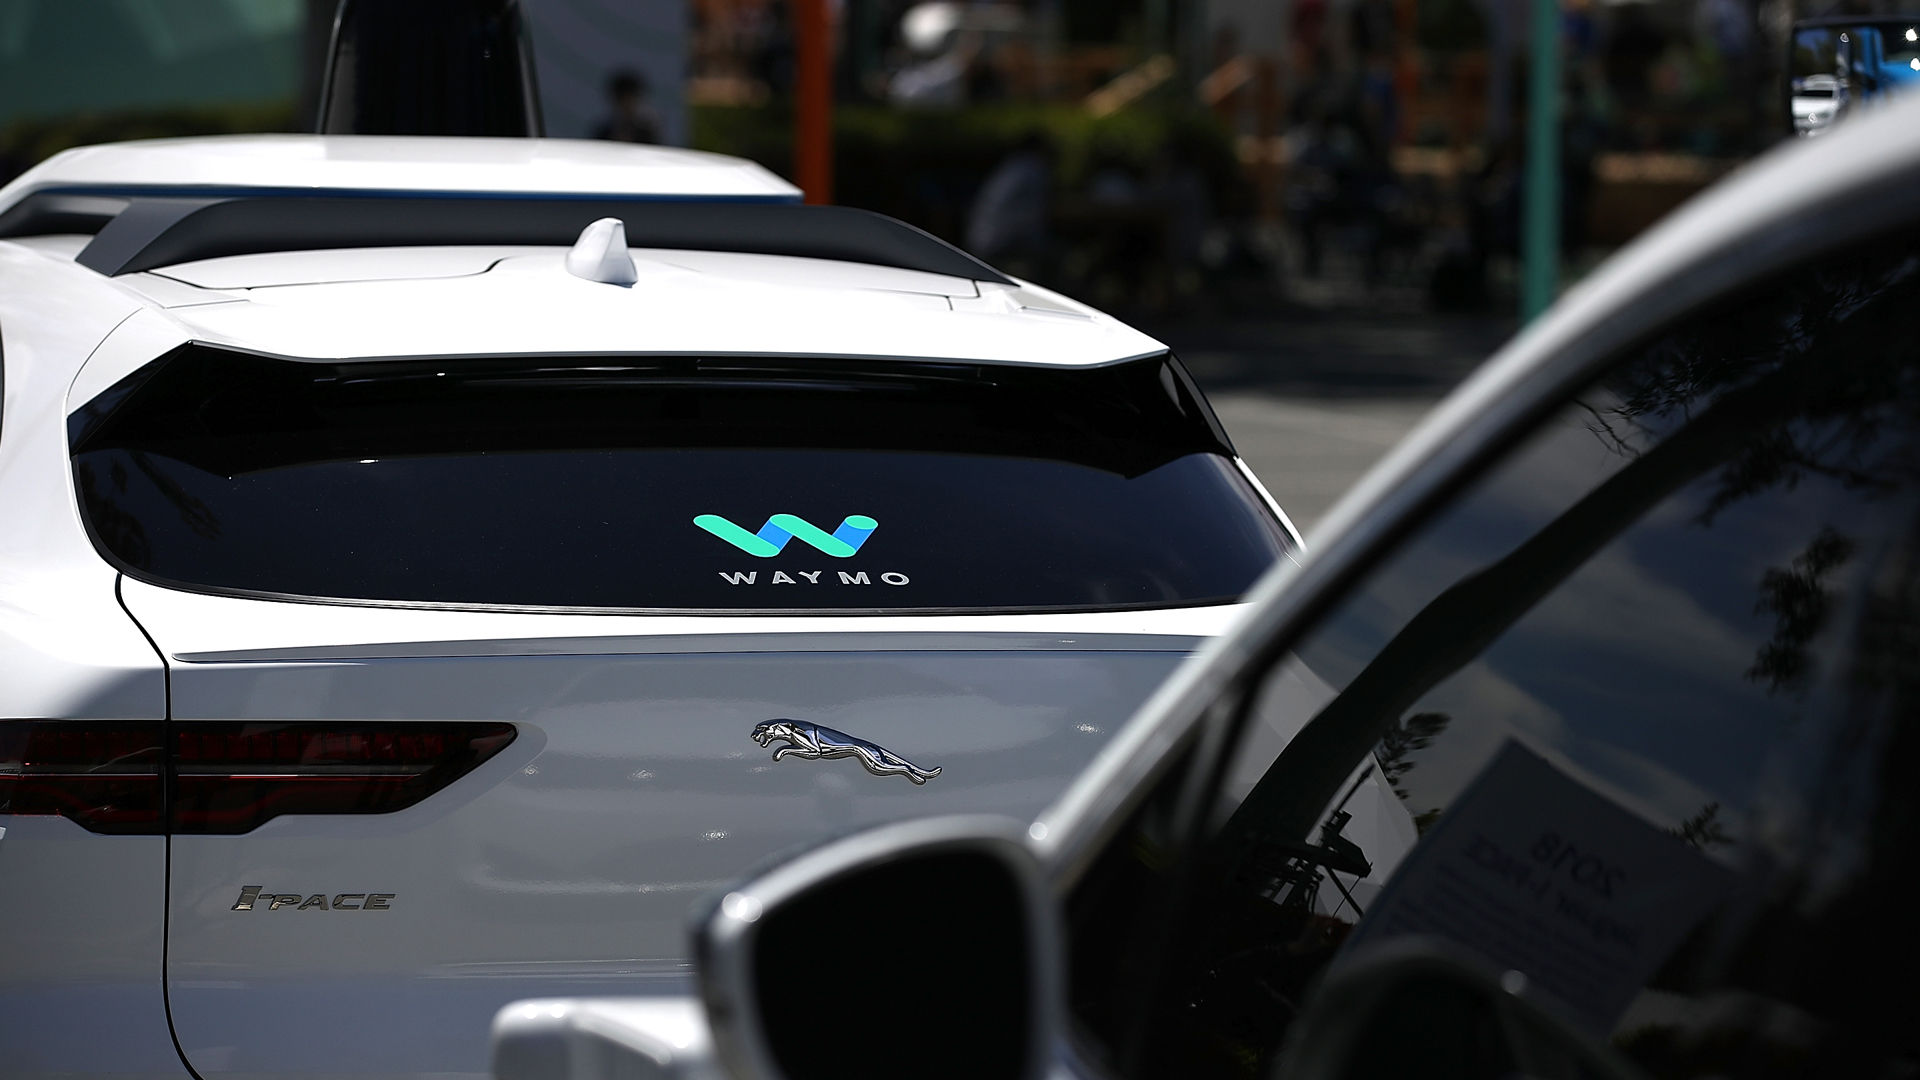 Waymo self-driving vehicles are displayed at the Google I/O 2018 Conference at Shoreline Amphitheater on May 8, 2018, in Mountain View, Calif. (Credit: Justin Sullivan/Getty Images)